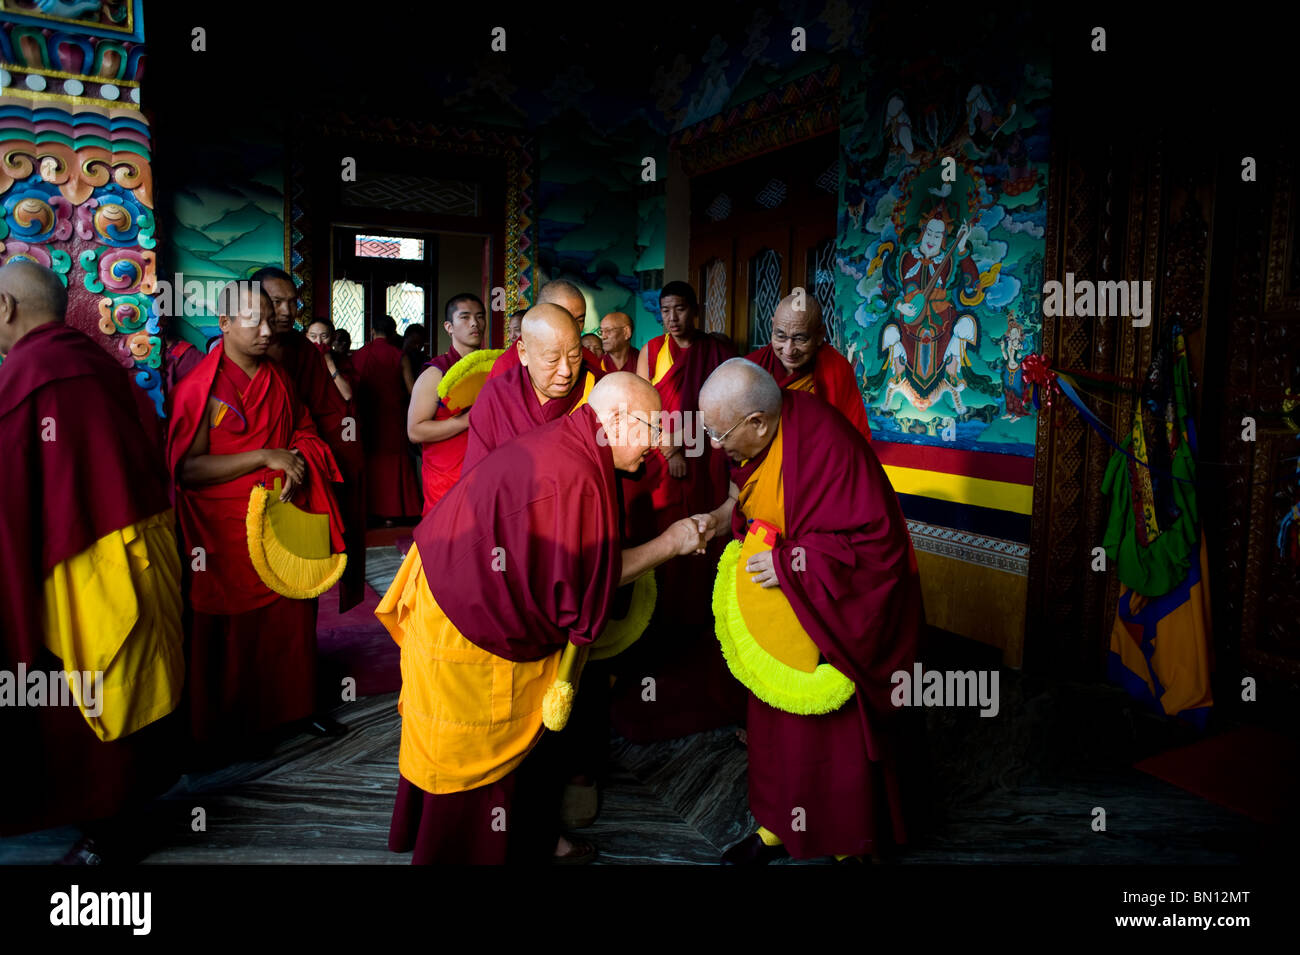 Buddhist Monks Greeting Each Other - Stock Image